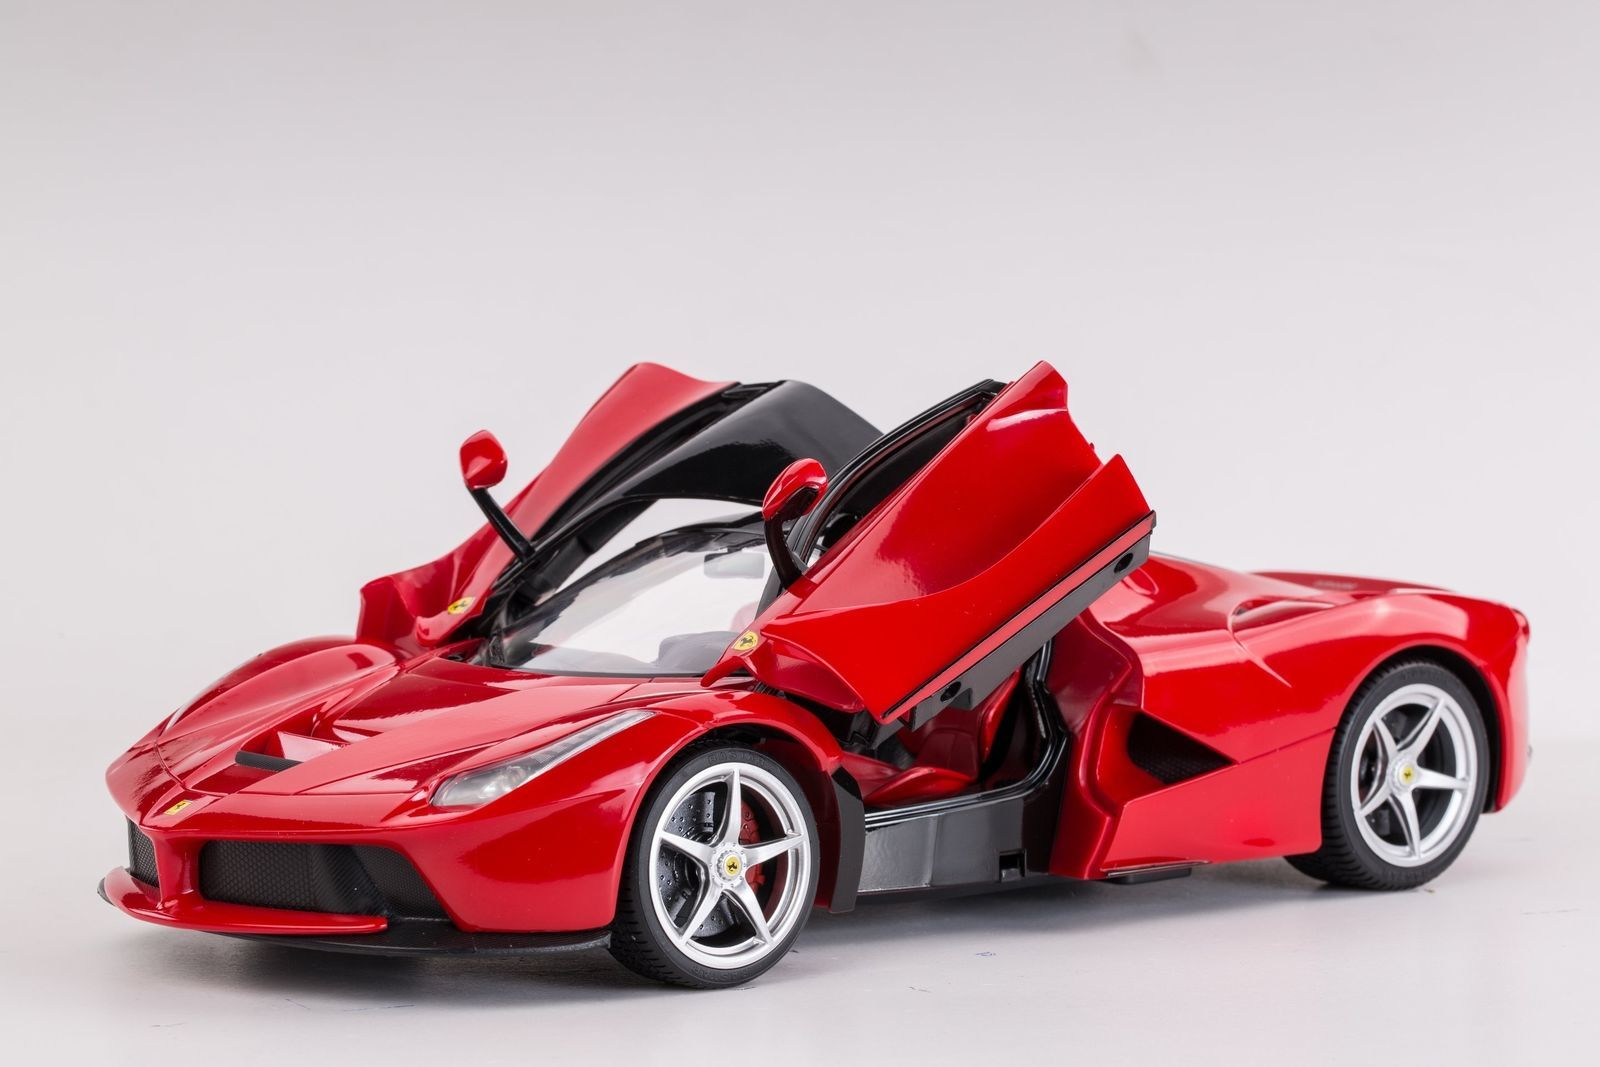 R c gorman for sale only 2 left at 75 officially licensed rc 114 la ferrari car rc rtr open doors w dailygadgetfo Image collections